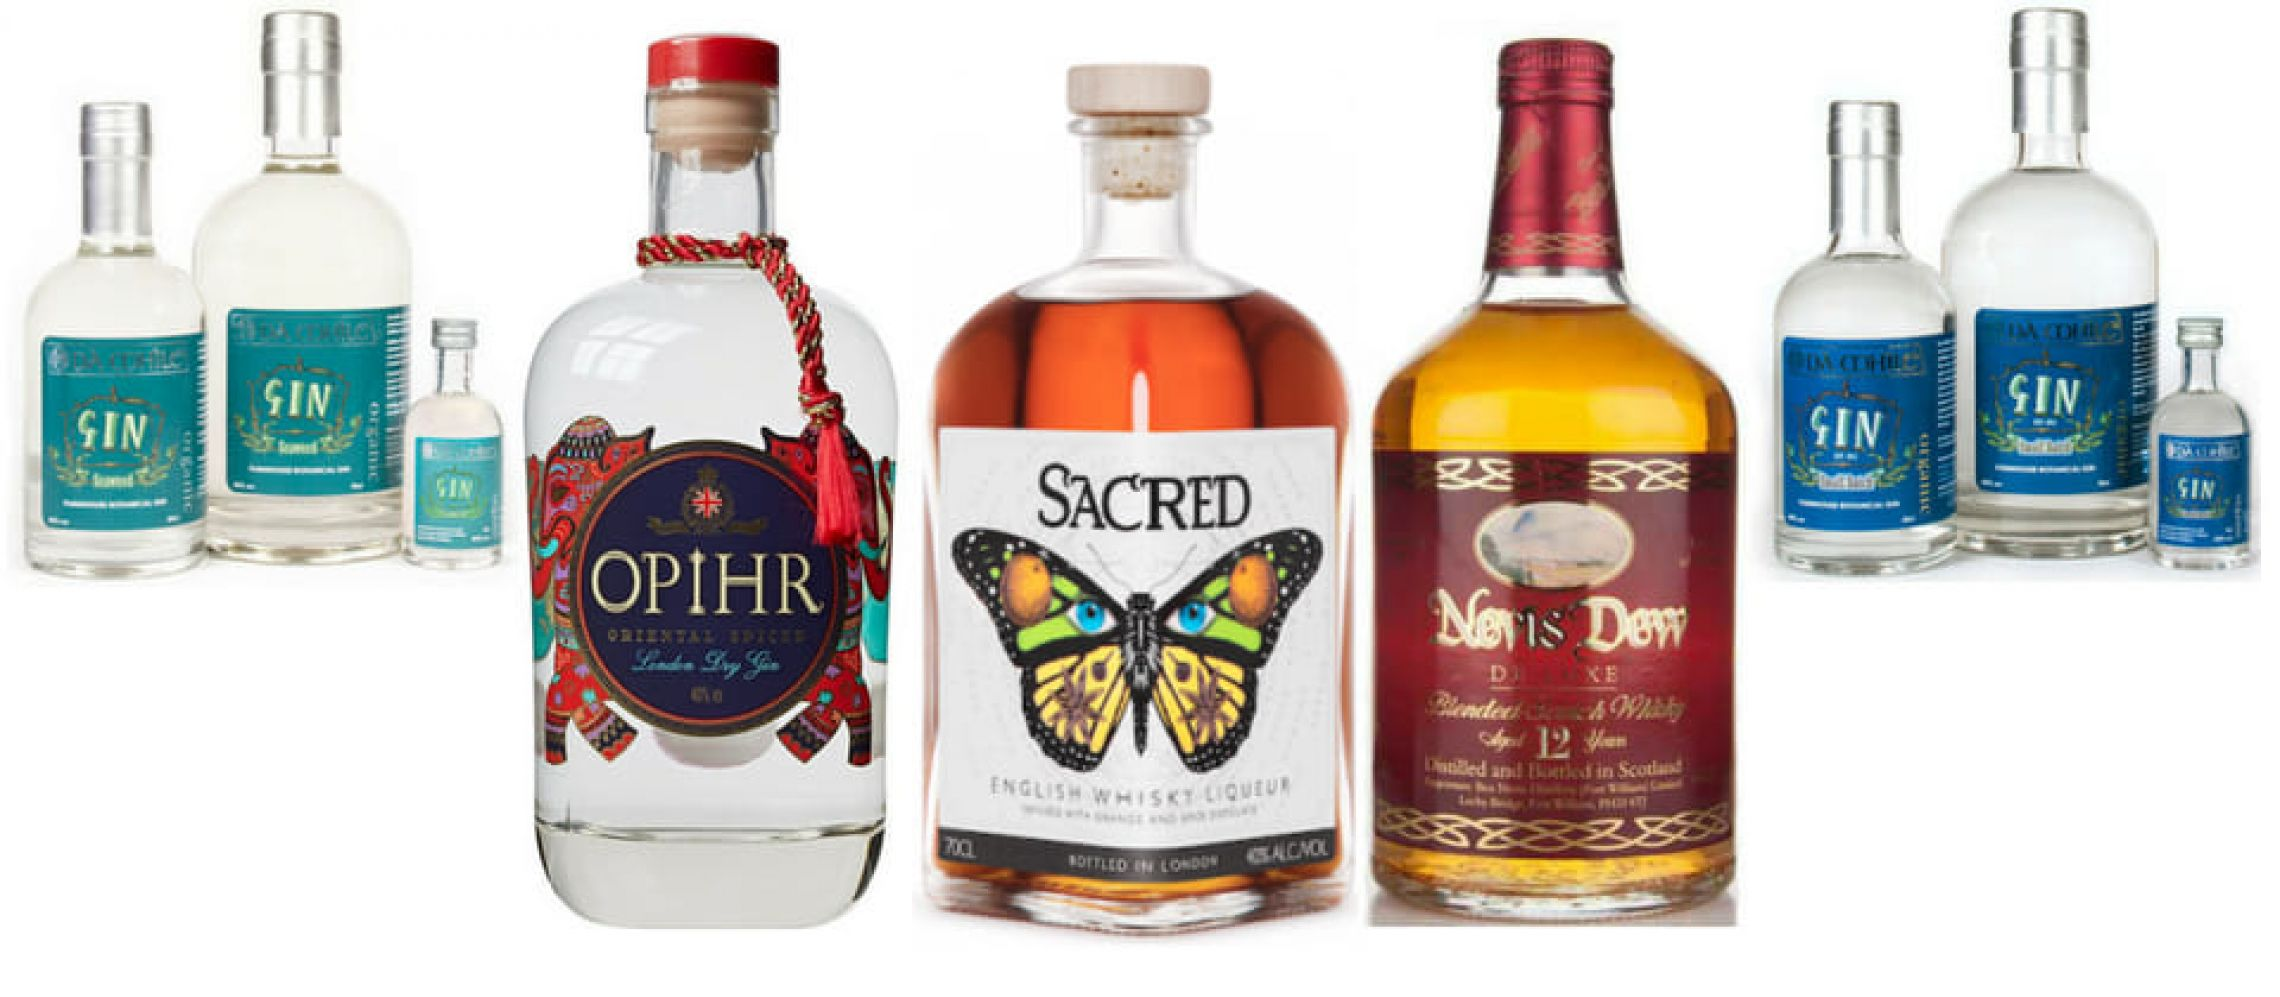 Photo for: Top 10 Spirits Brands of UK that You Should Try in 2018